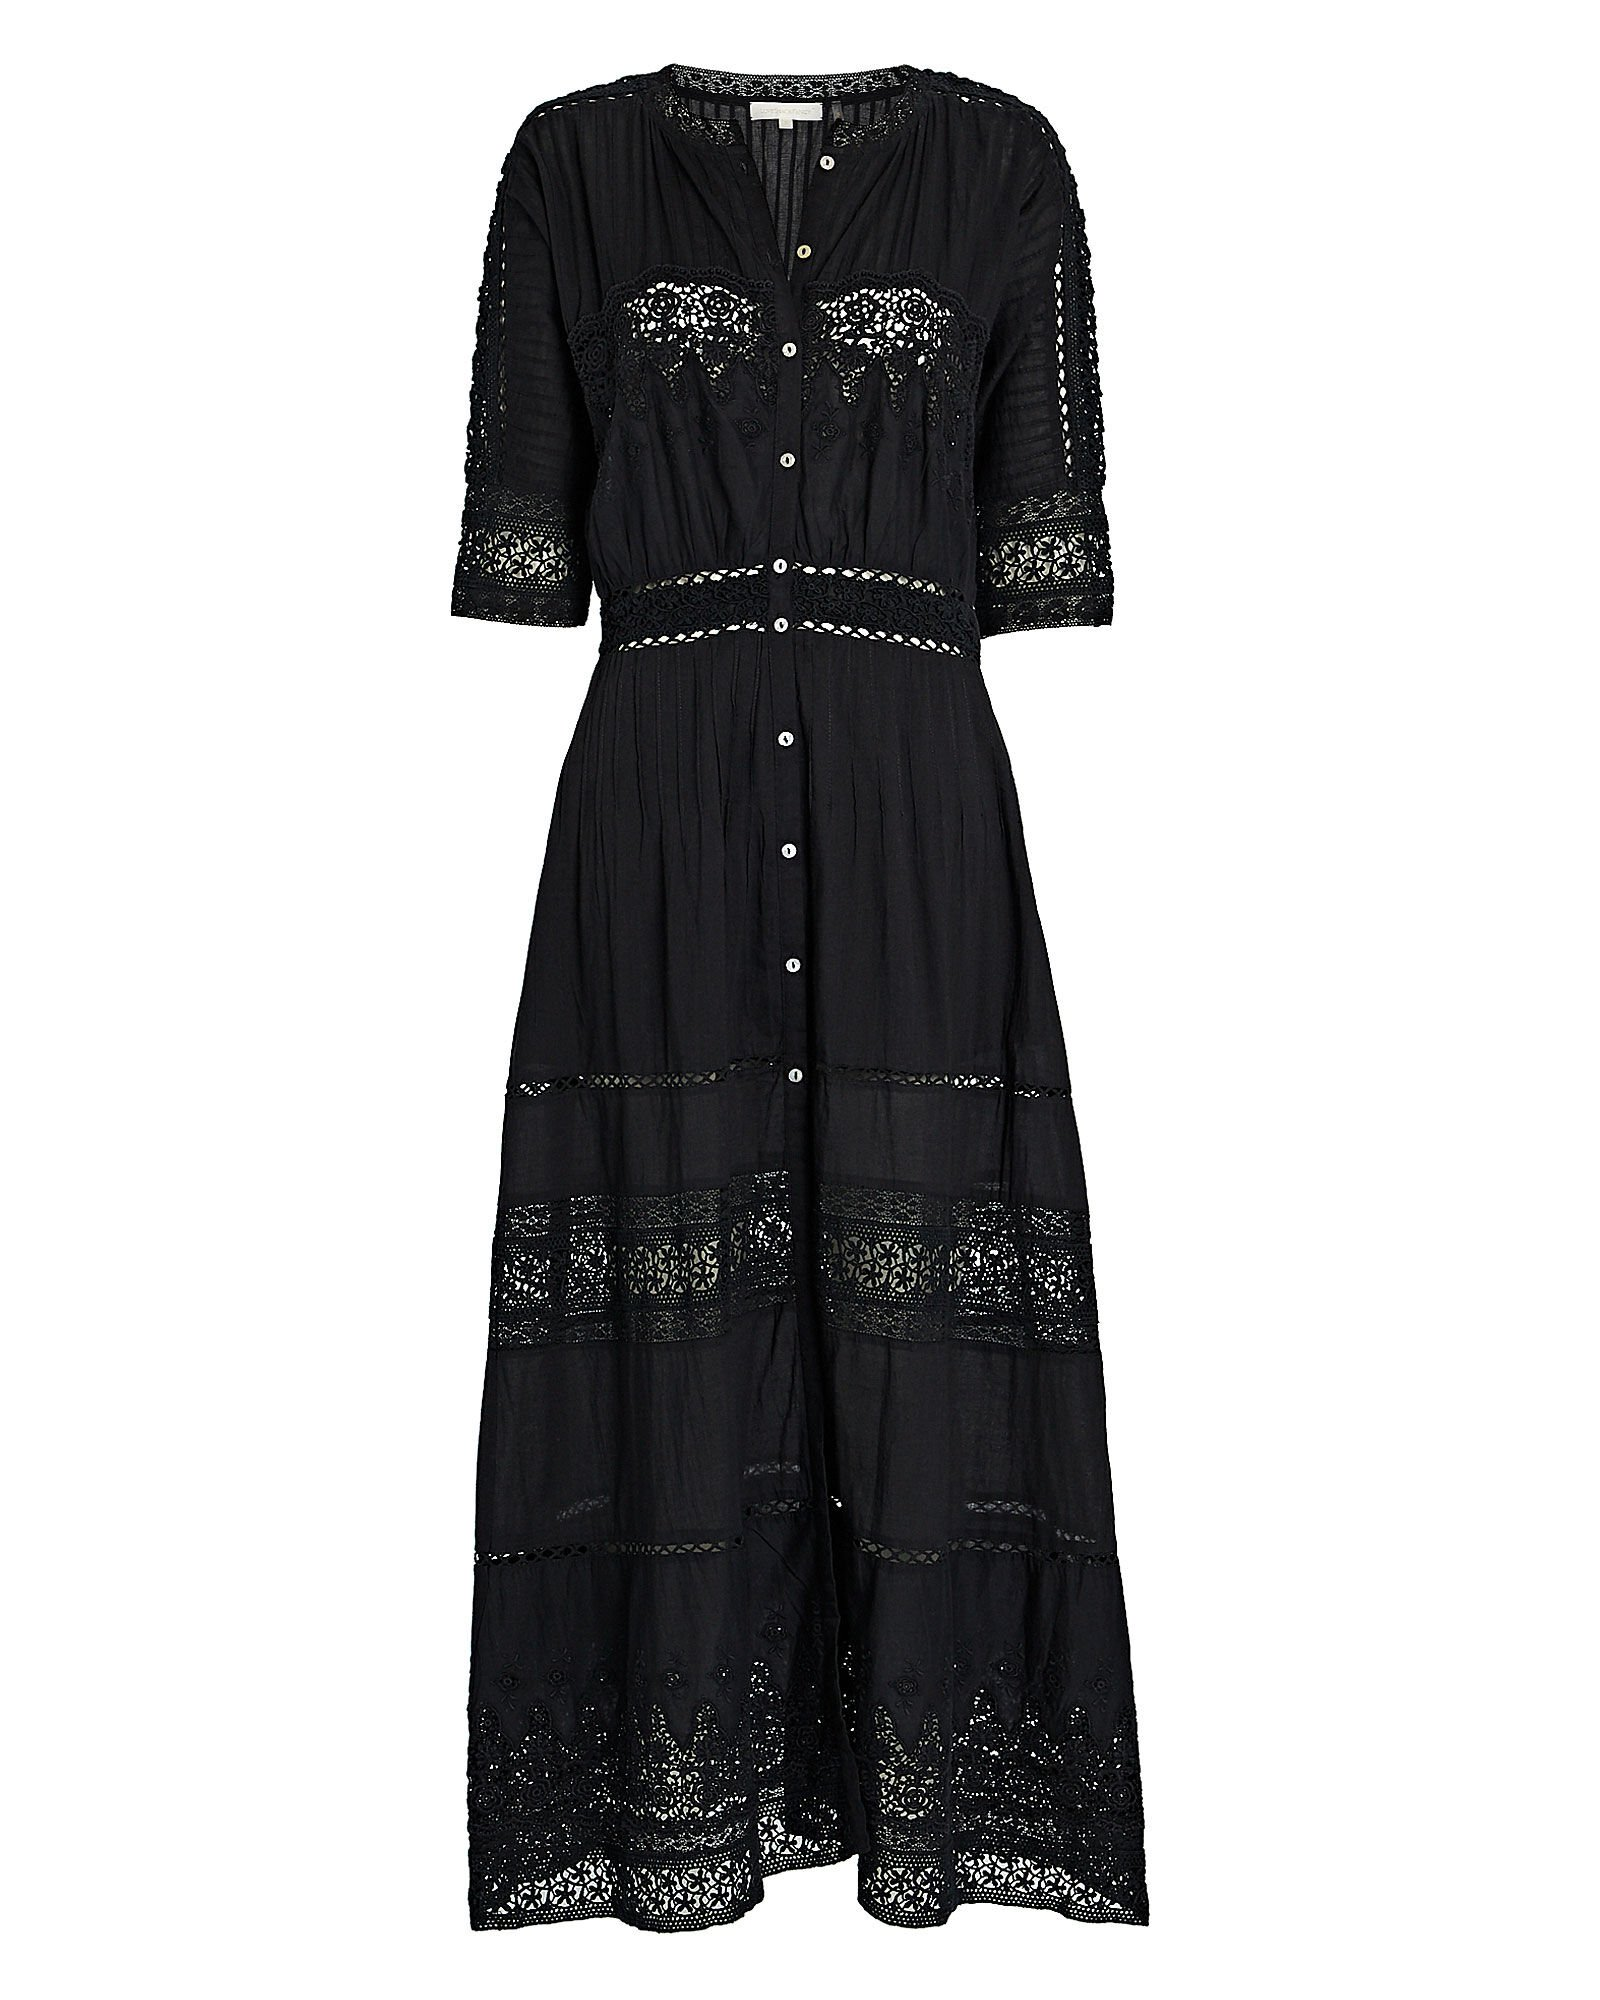 Beth Lace Cotton Midi Dress, BLACK, hi-res